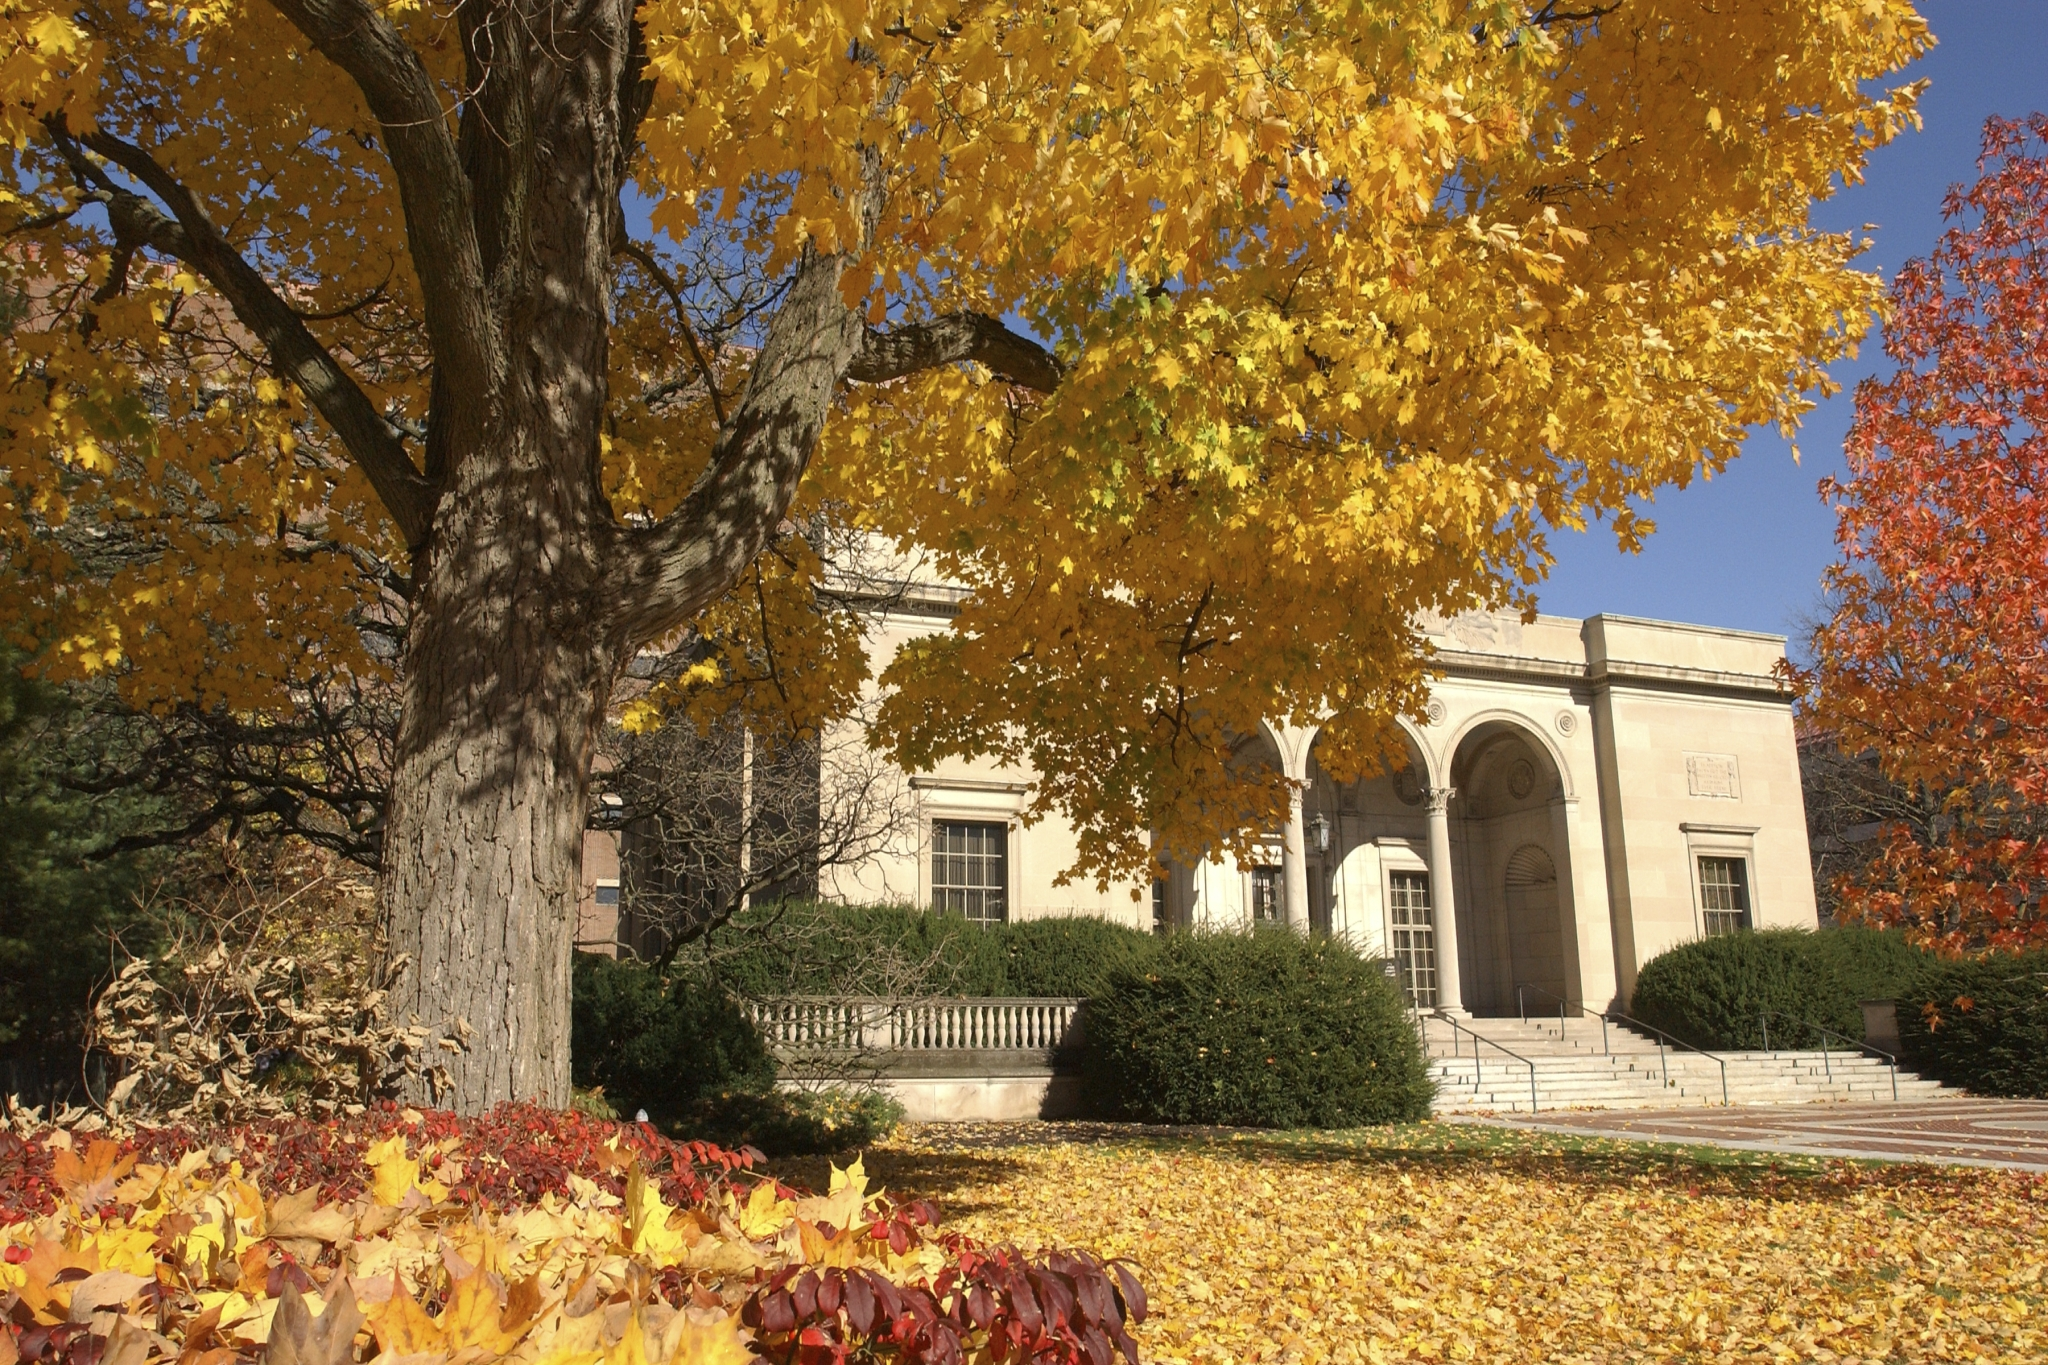 clements-library-fall.jpg